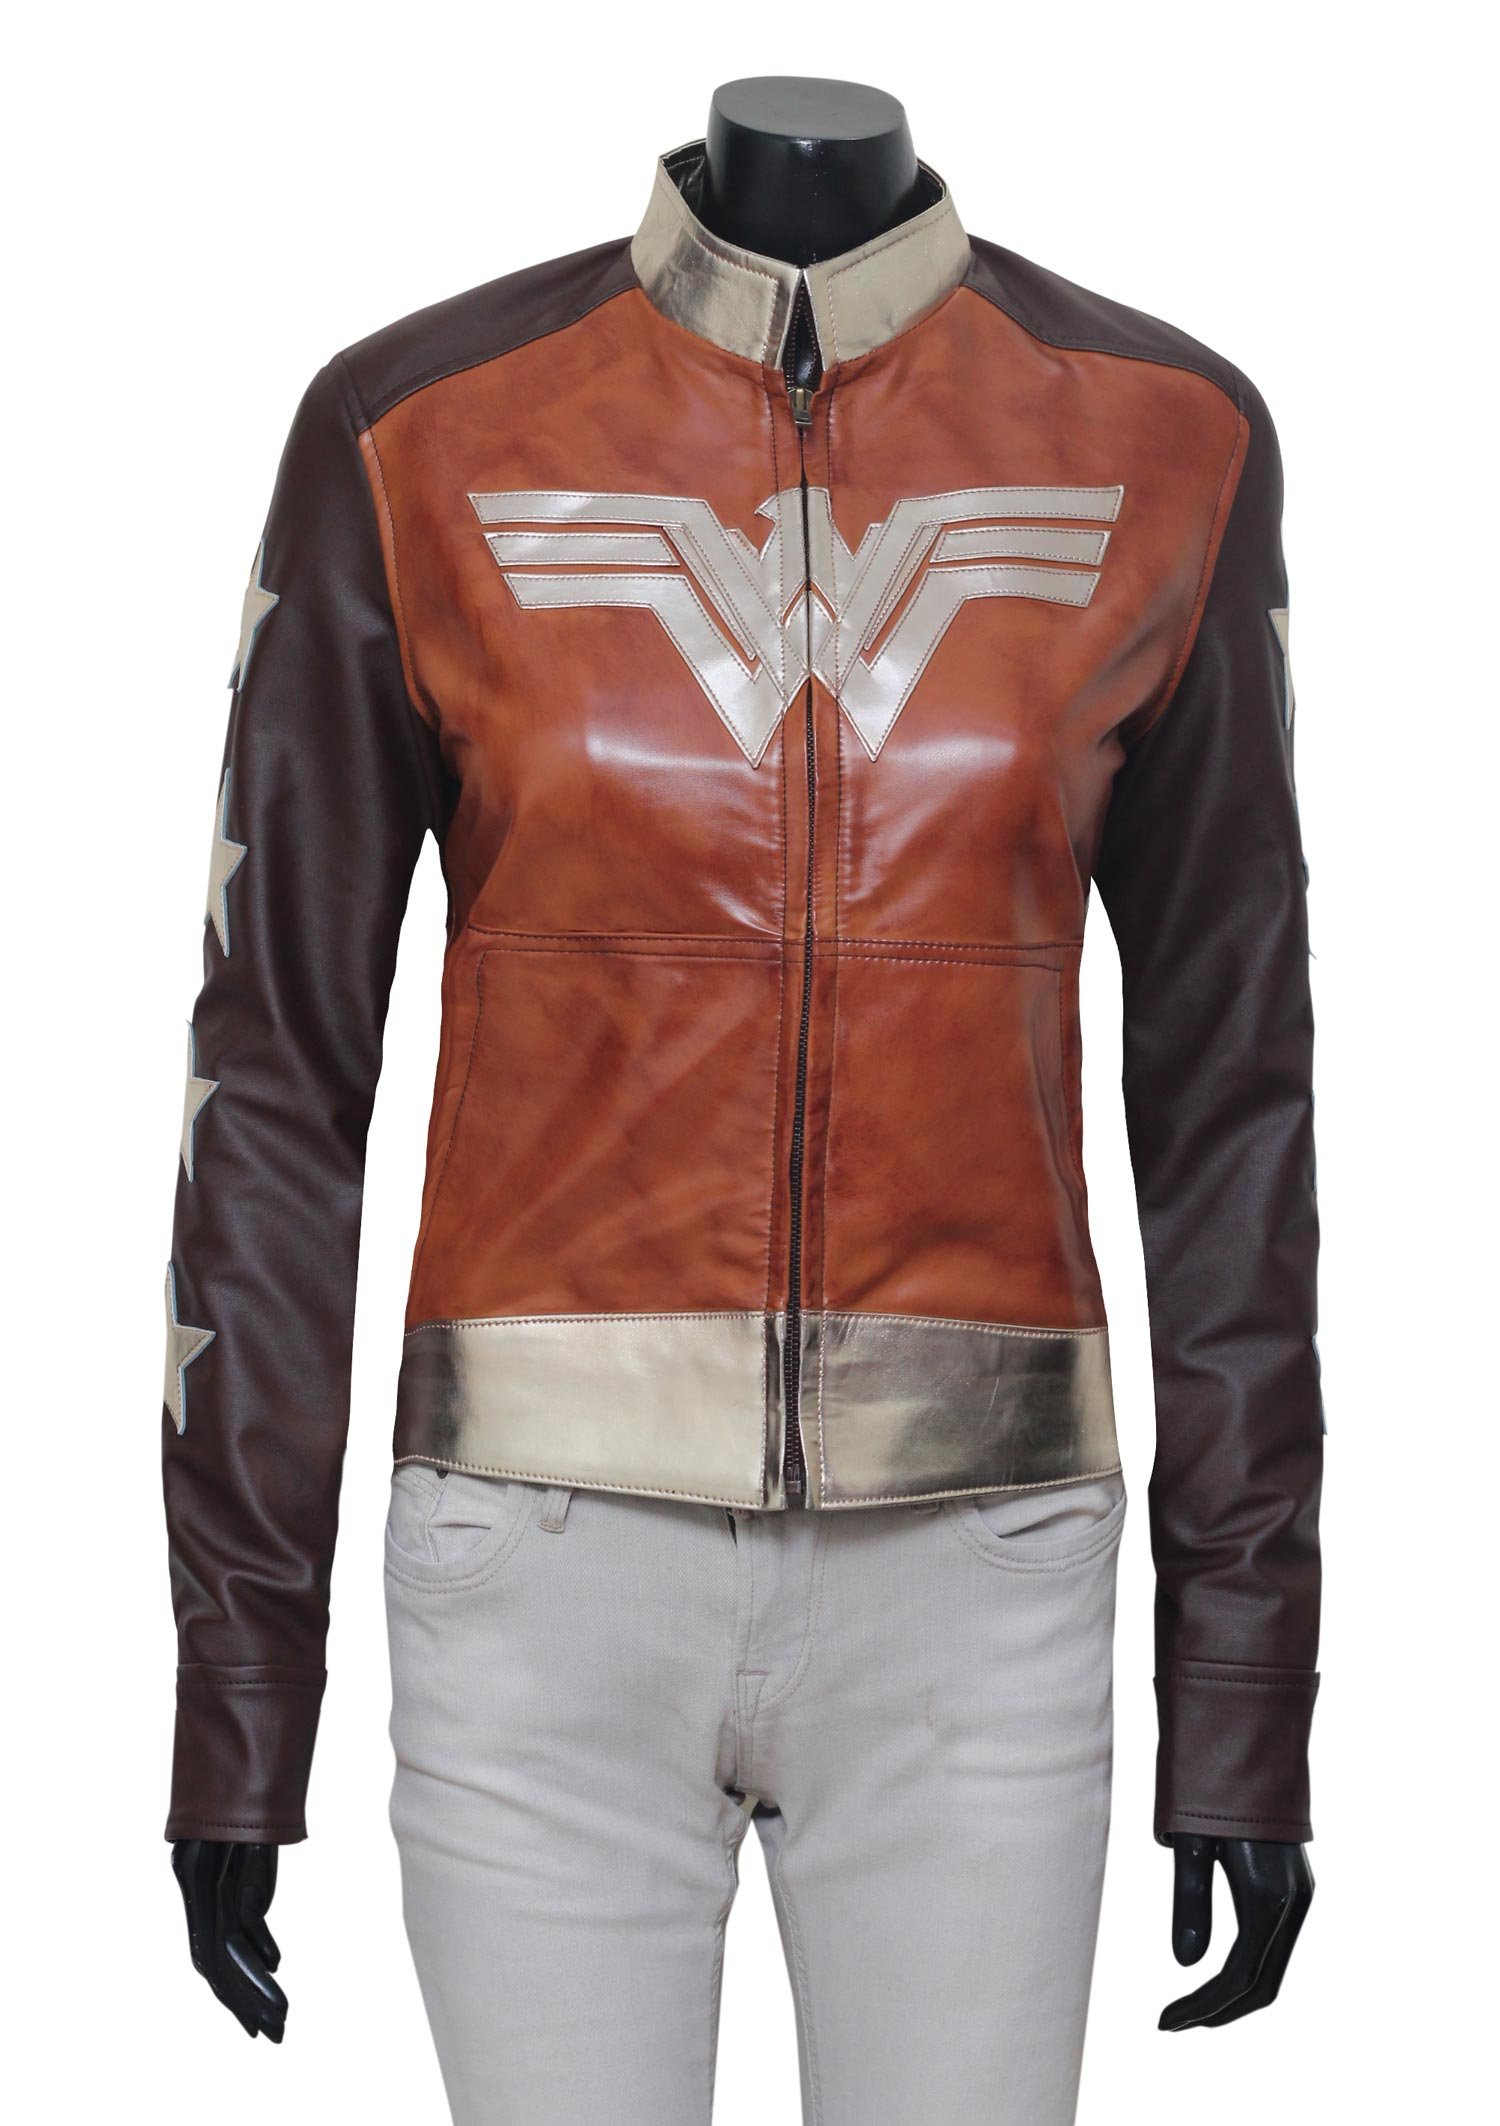 Decrum Wonder Woman Dress Brown Waxed Leather Jacket Costumes (XL, Brown Waxed Jacket)